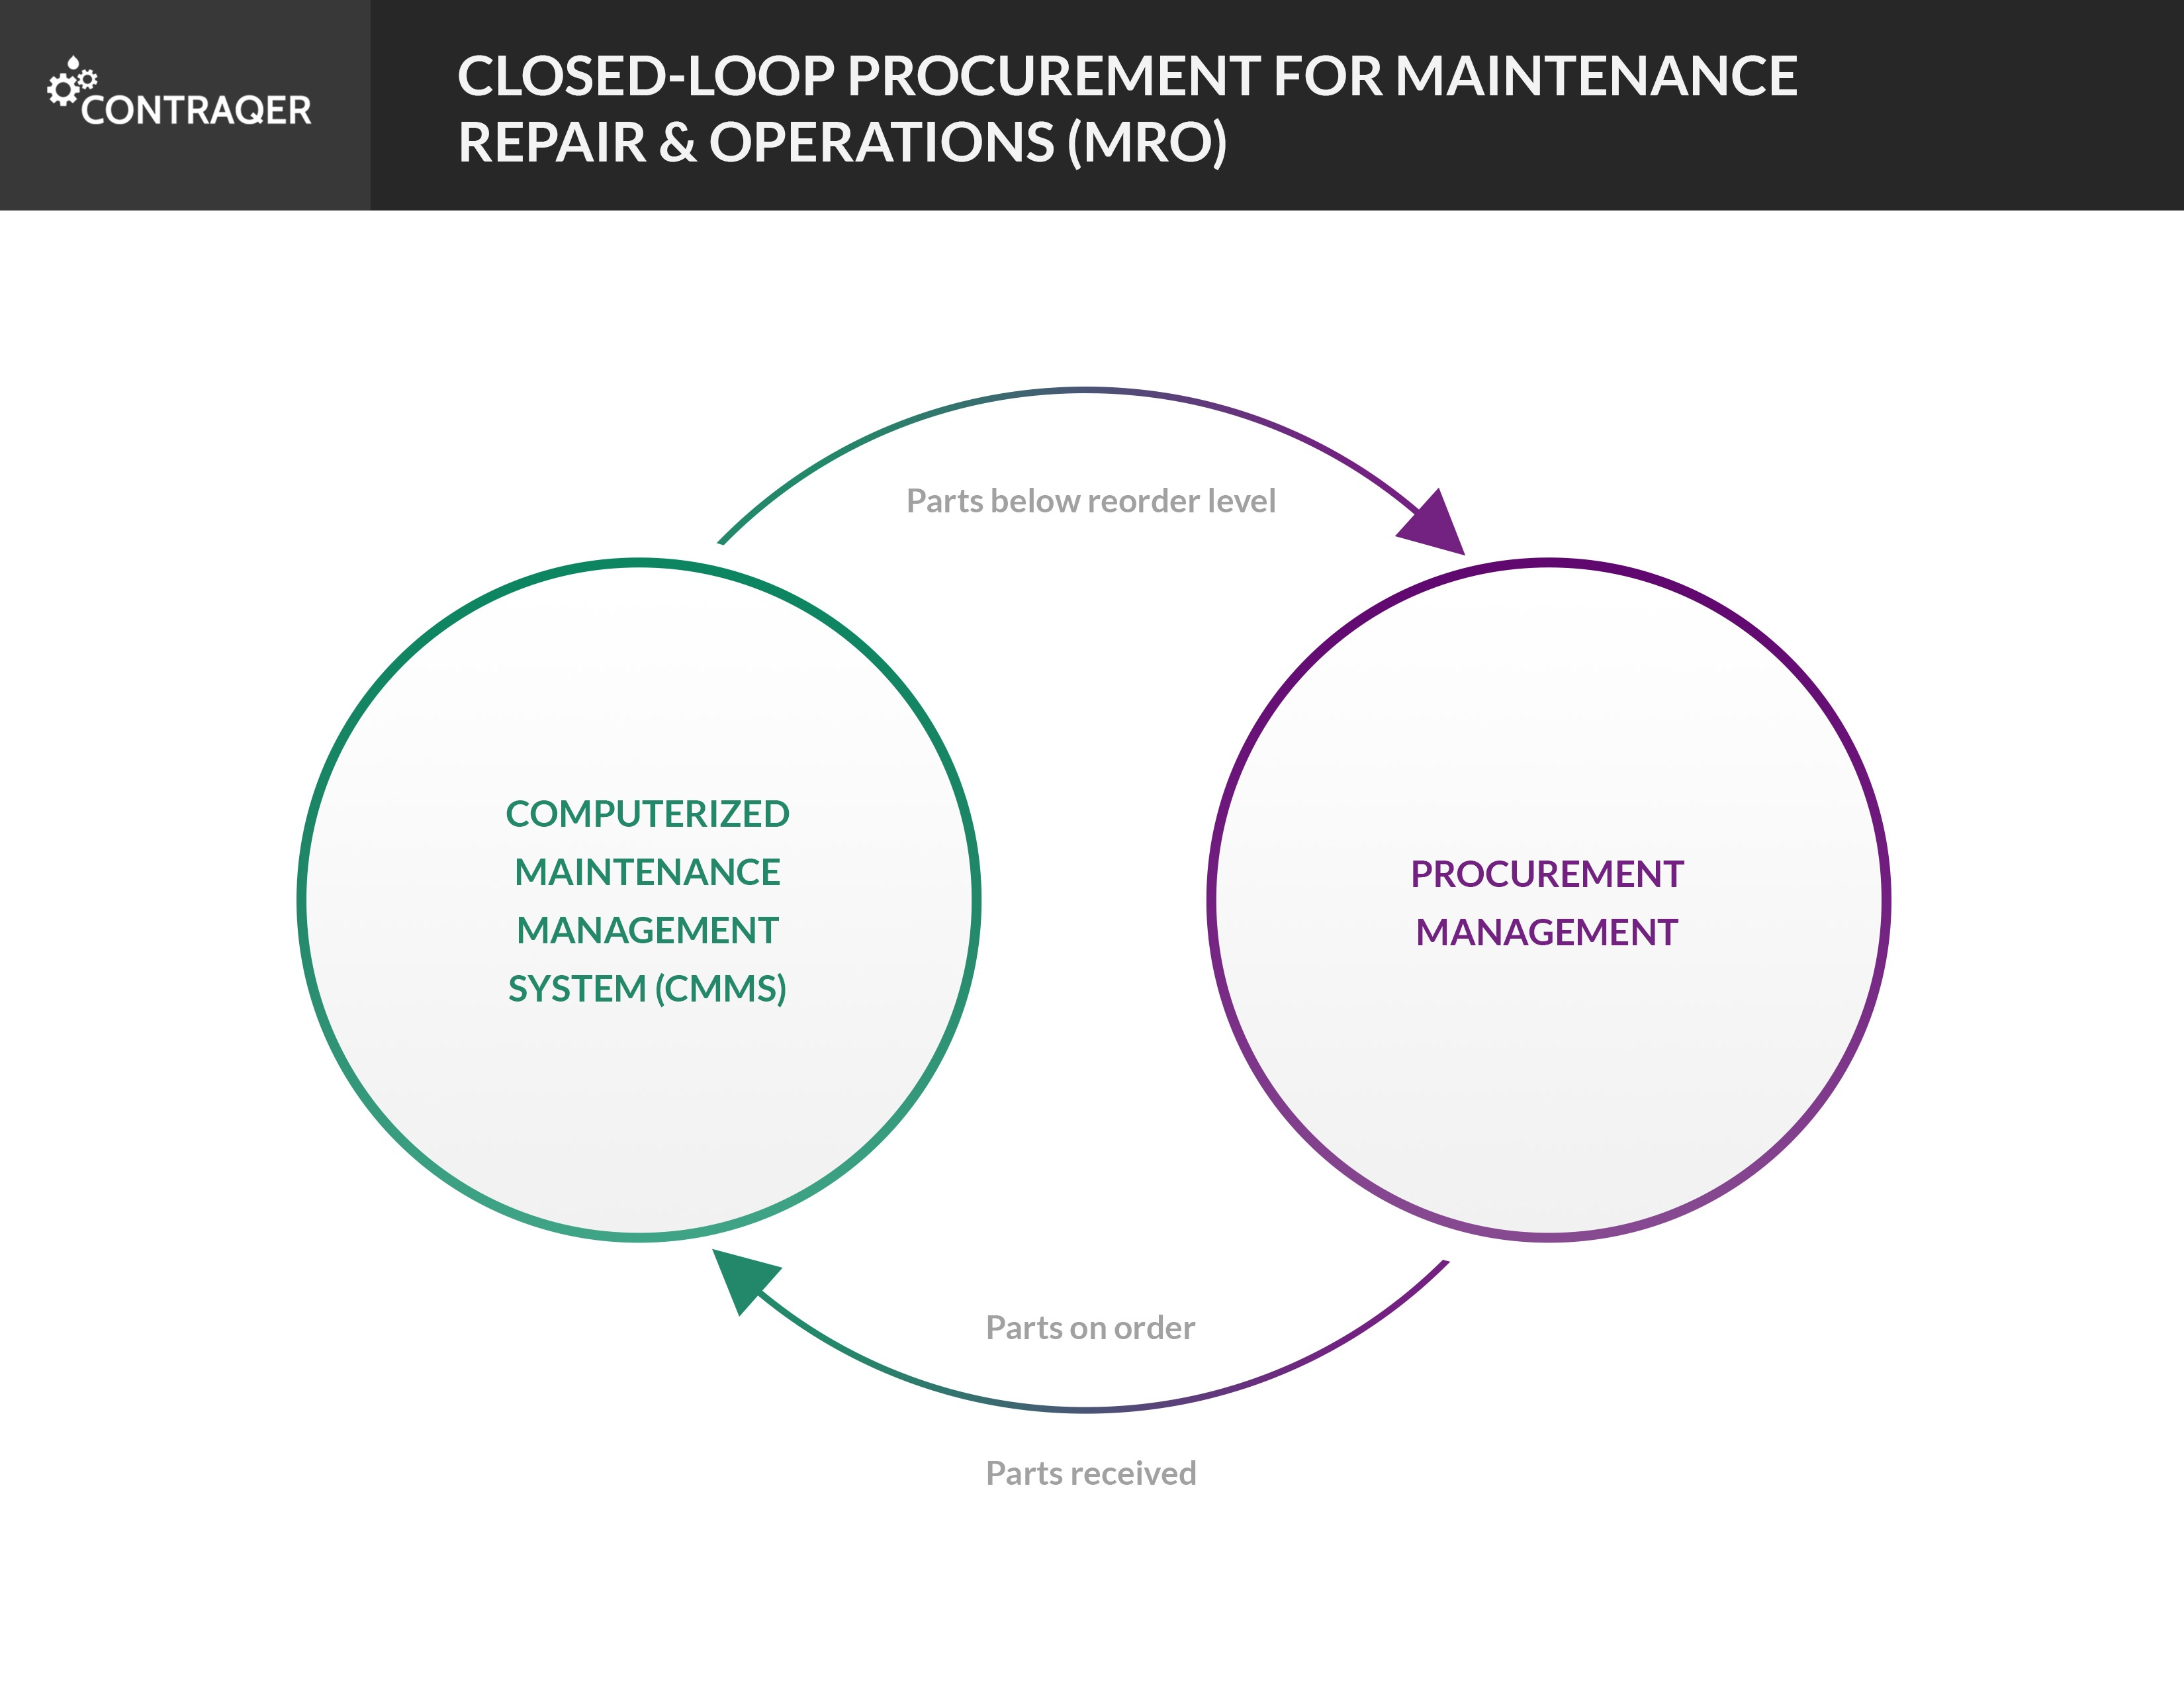 Learn How Closed-Loop MRO Procurement Saves Time & Improves Uptime